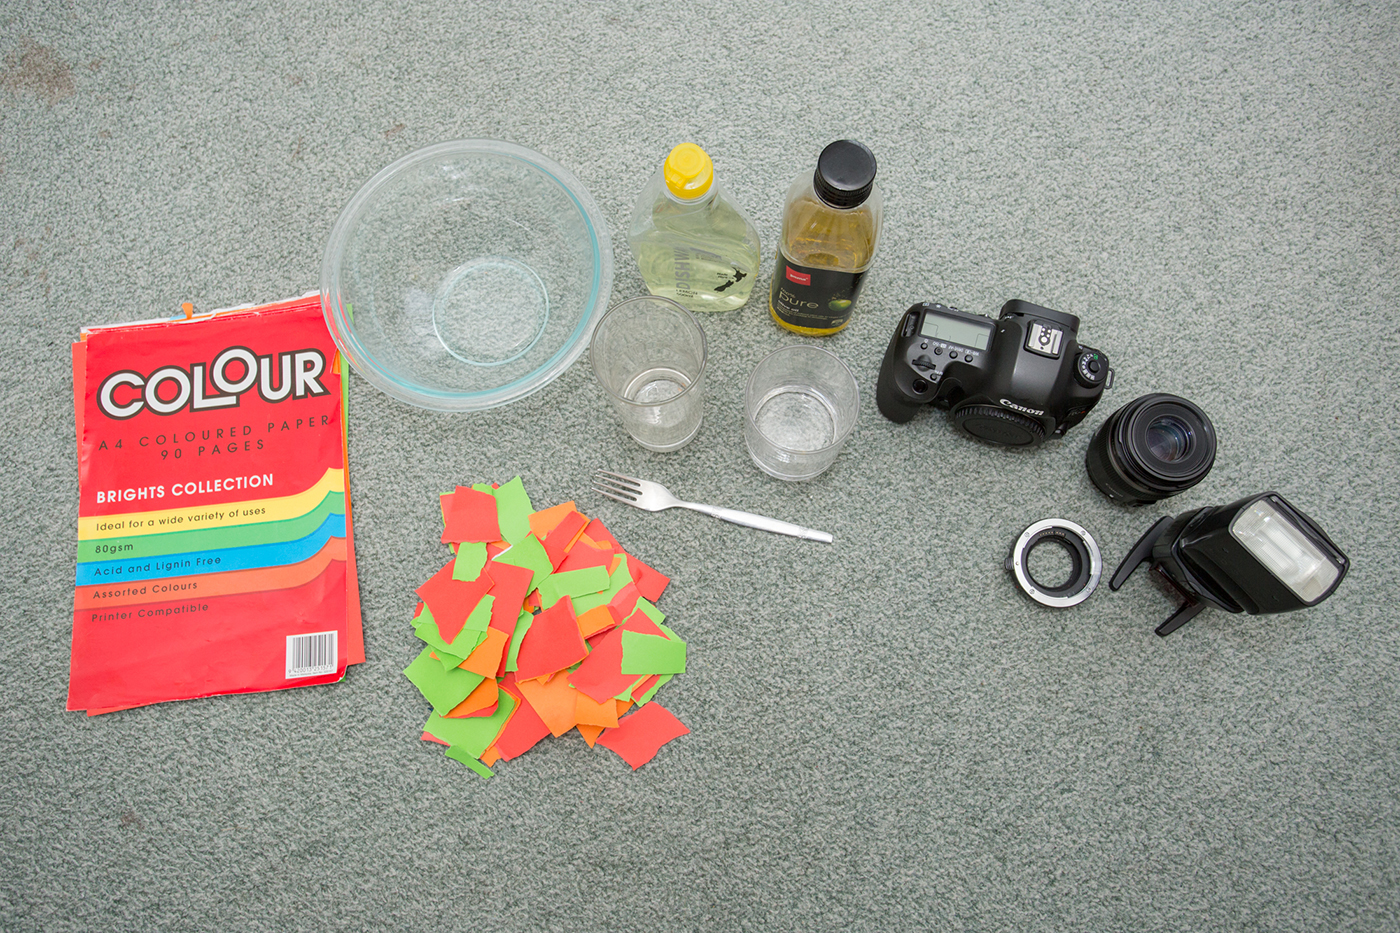 Canon equipment for bubble photography